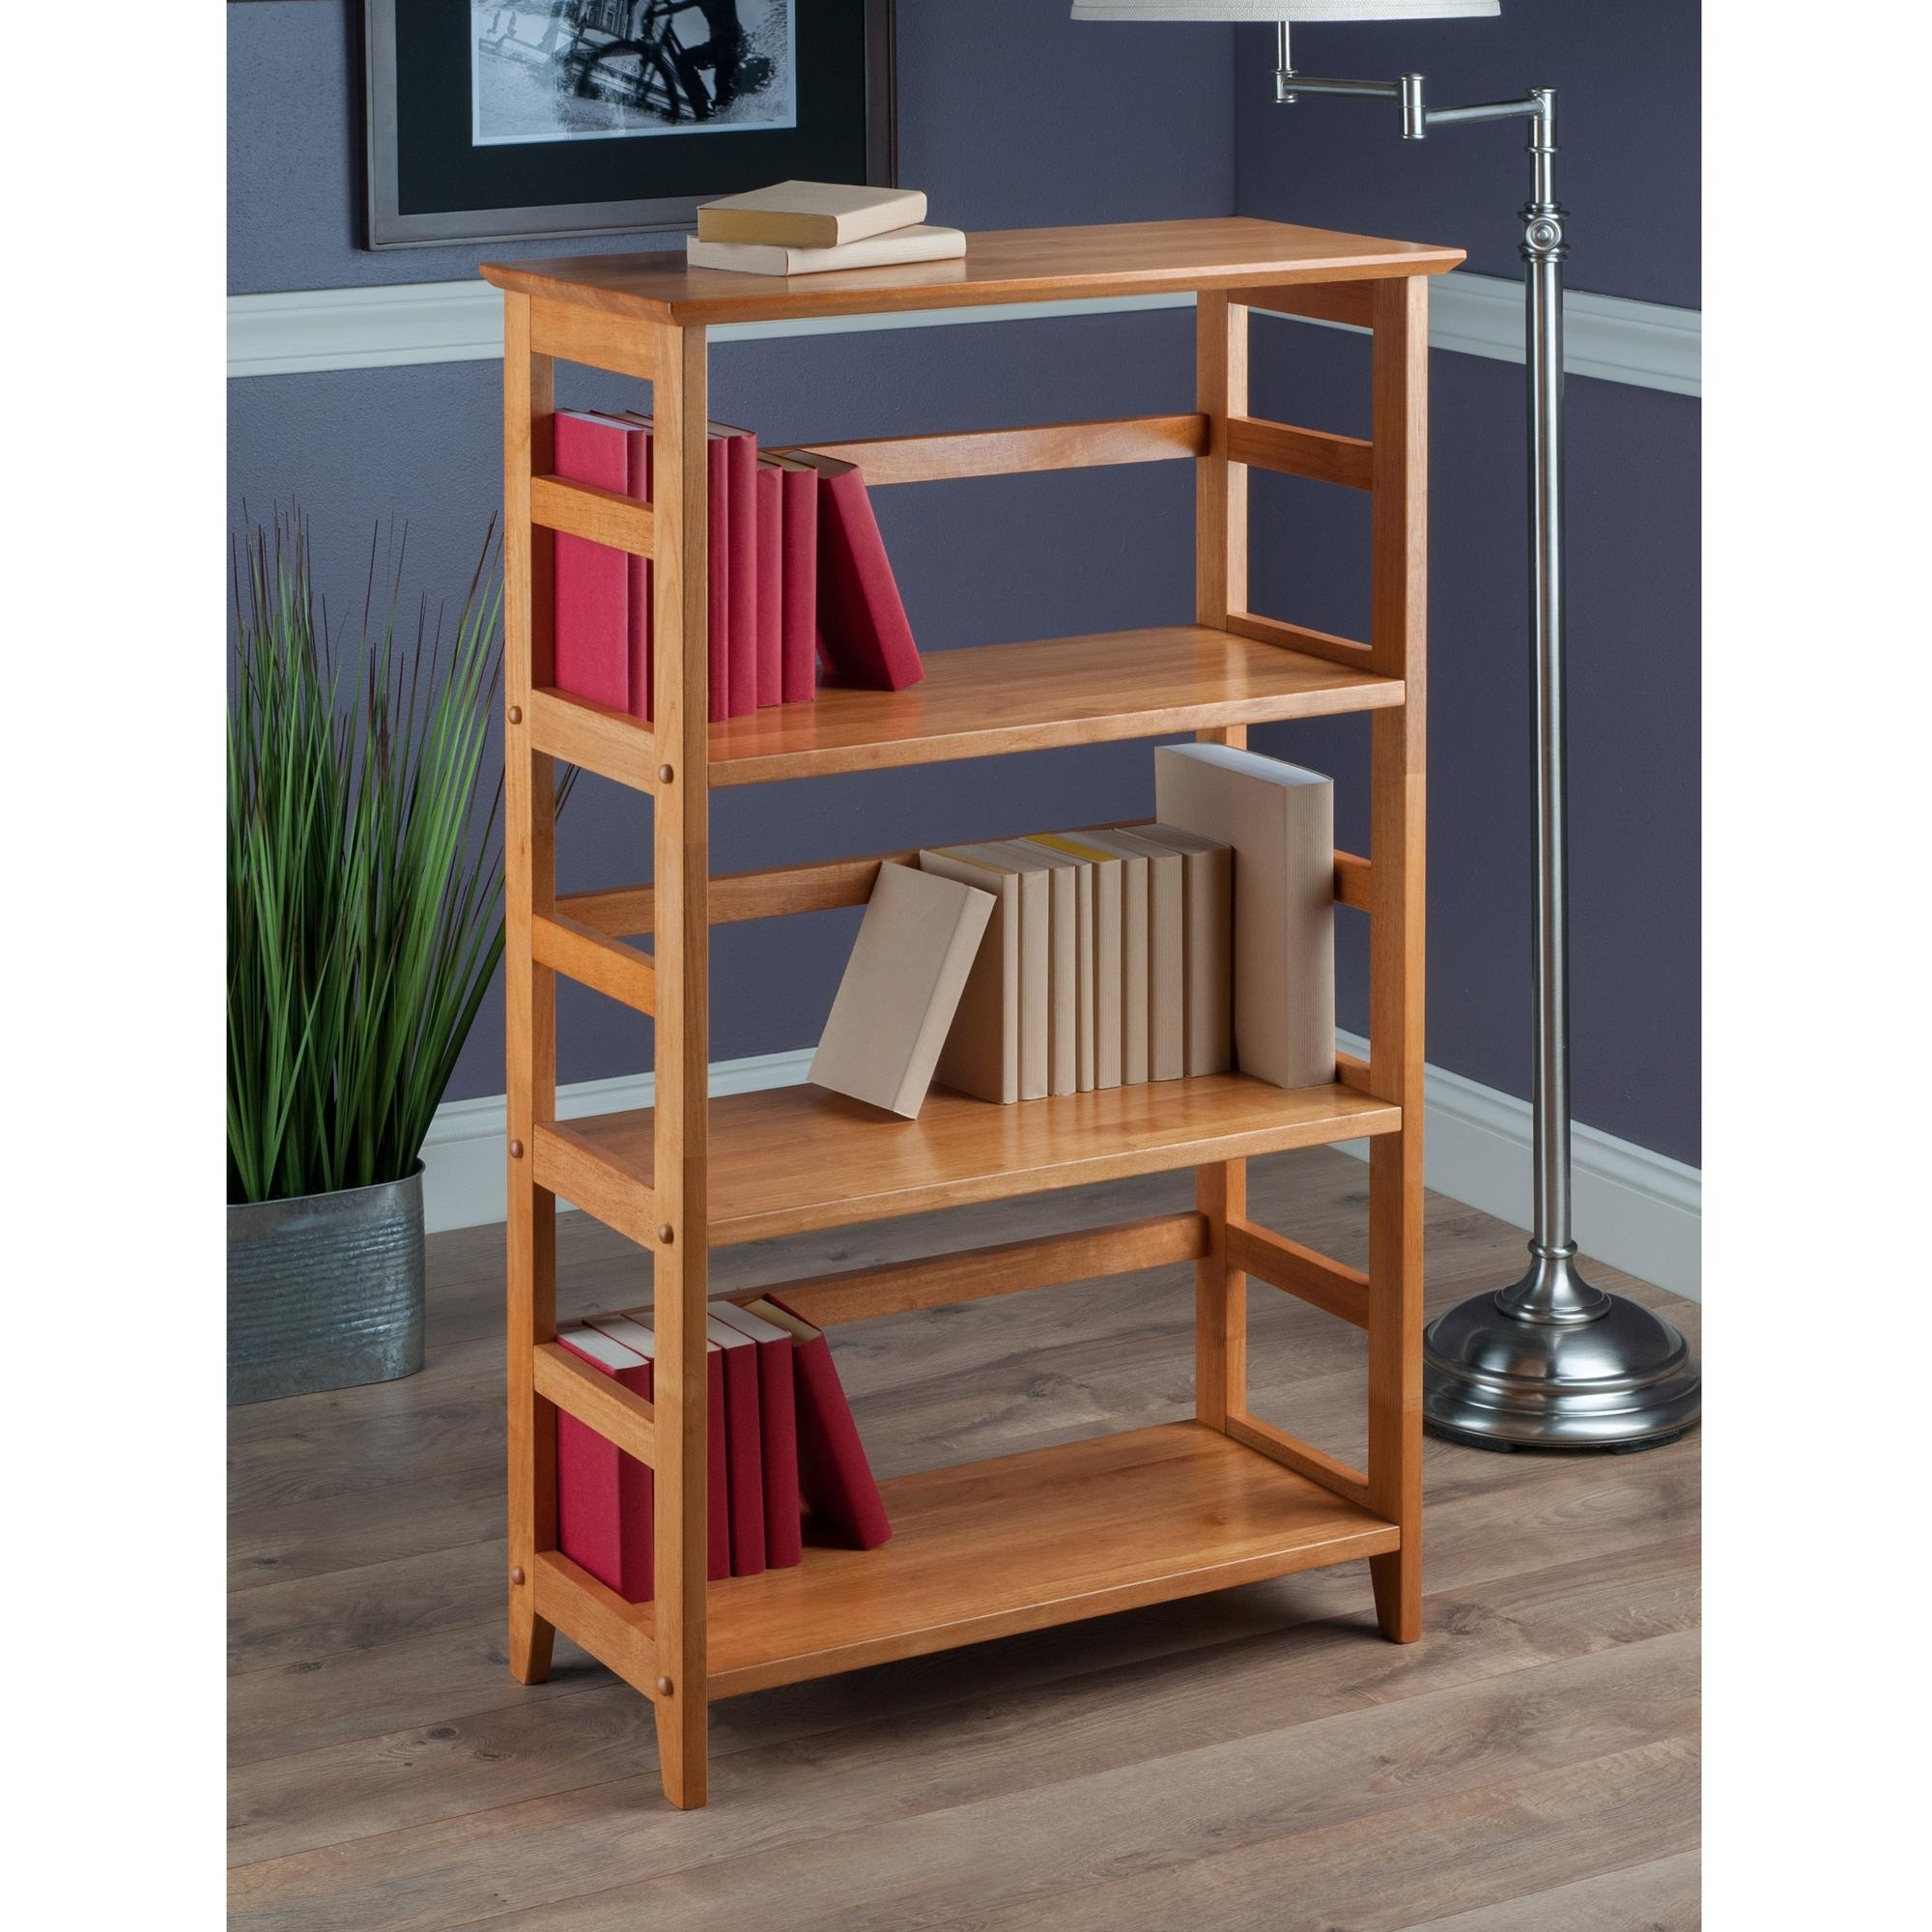 Favorite Amazon: Winsome Wood 4 Tier Bookshelf, Honey: Kitchen & Dining With High Quality Bookcases (View 11 of 15)